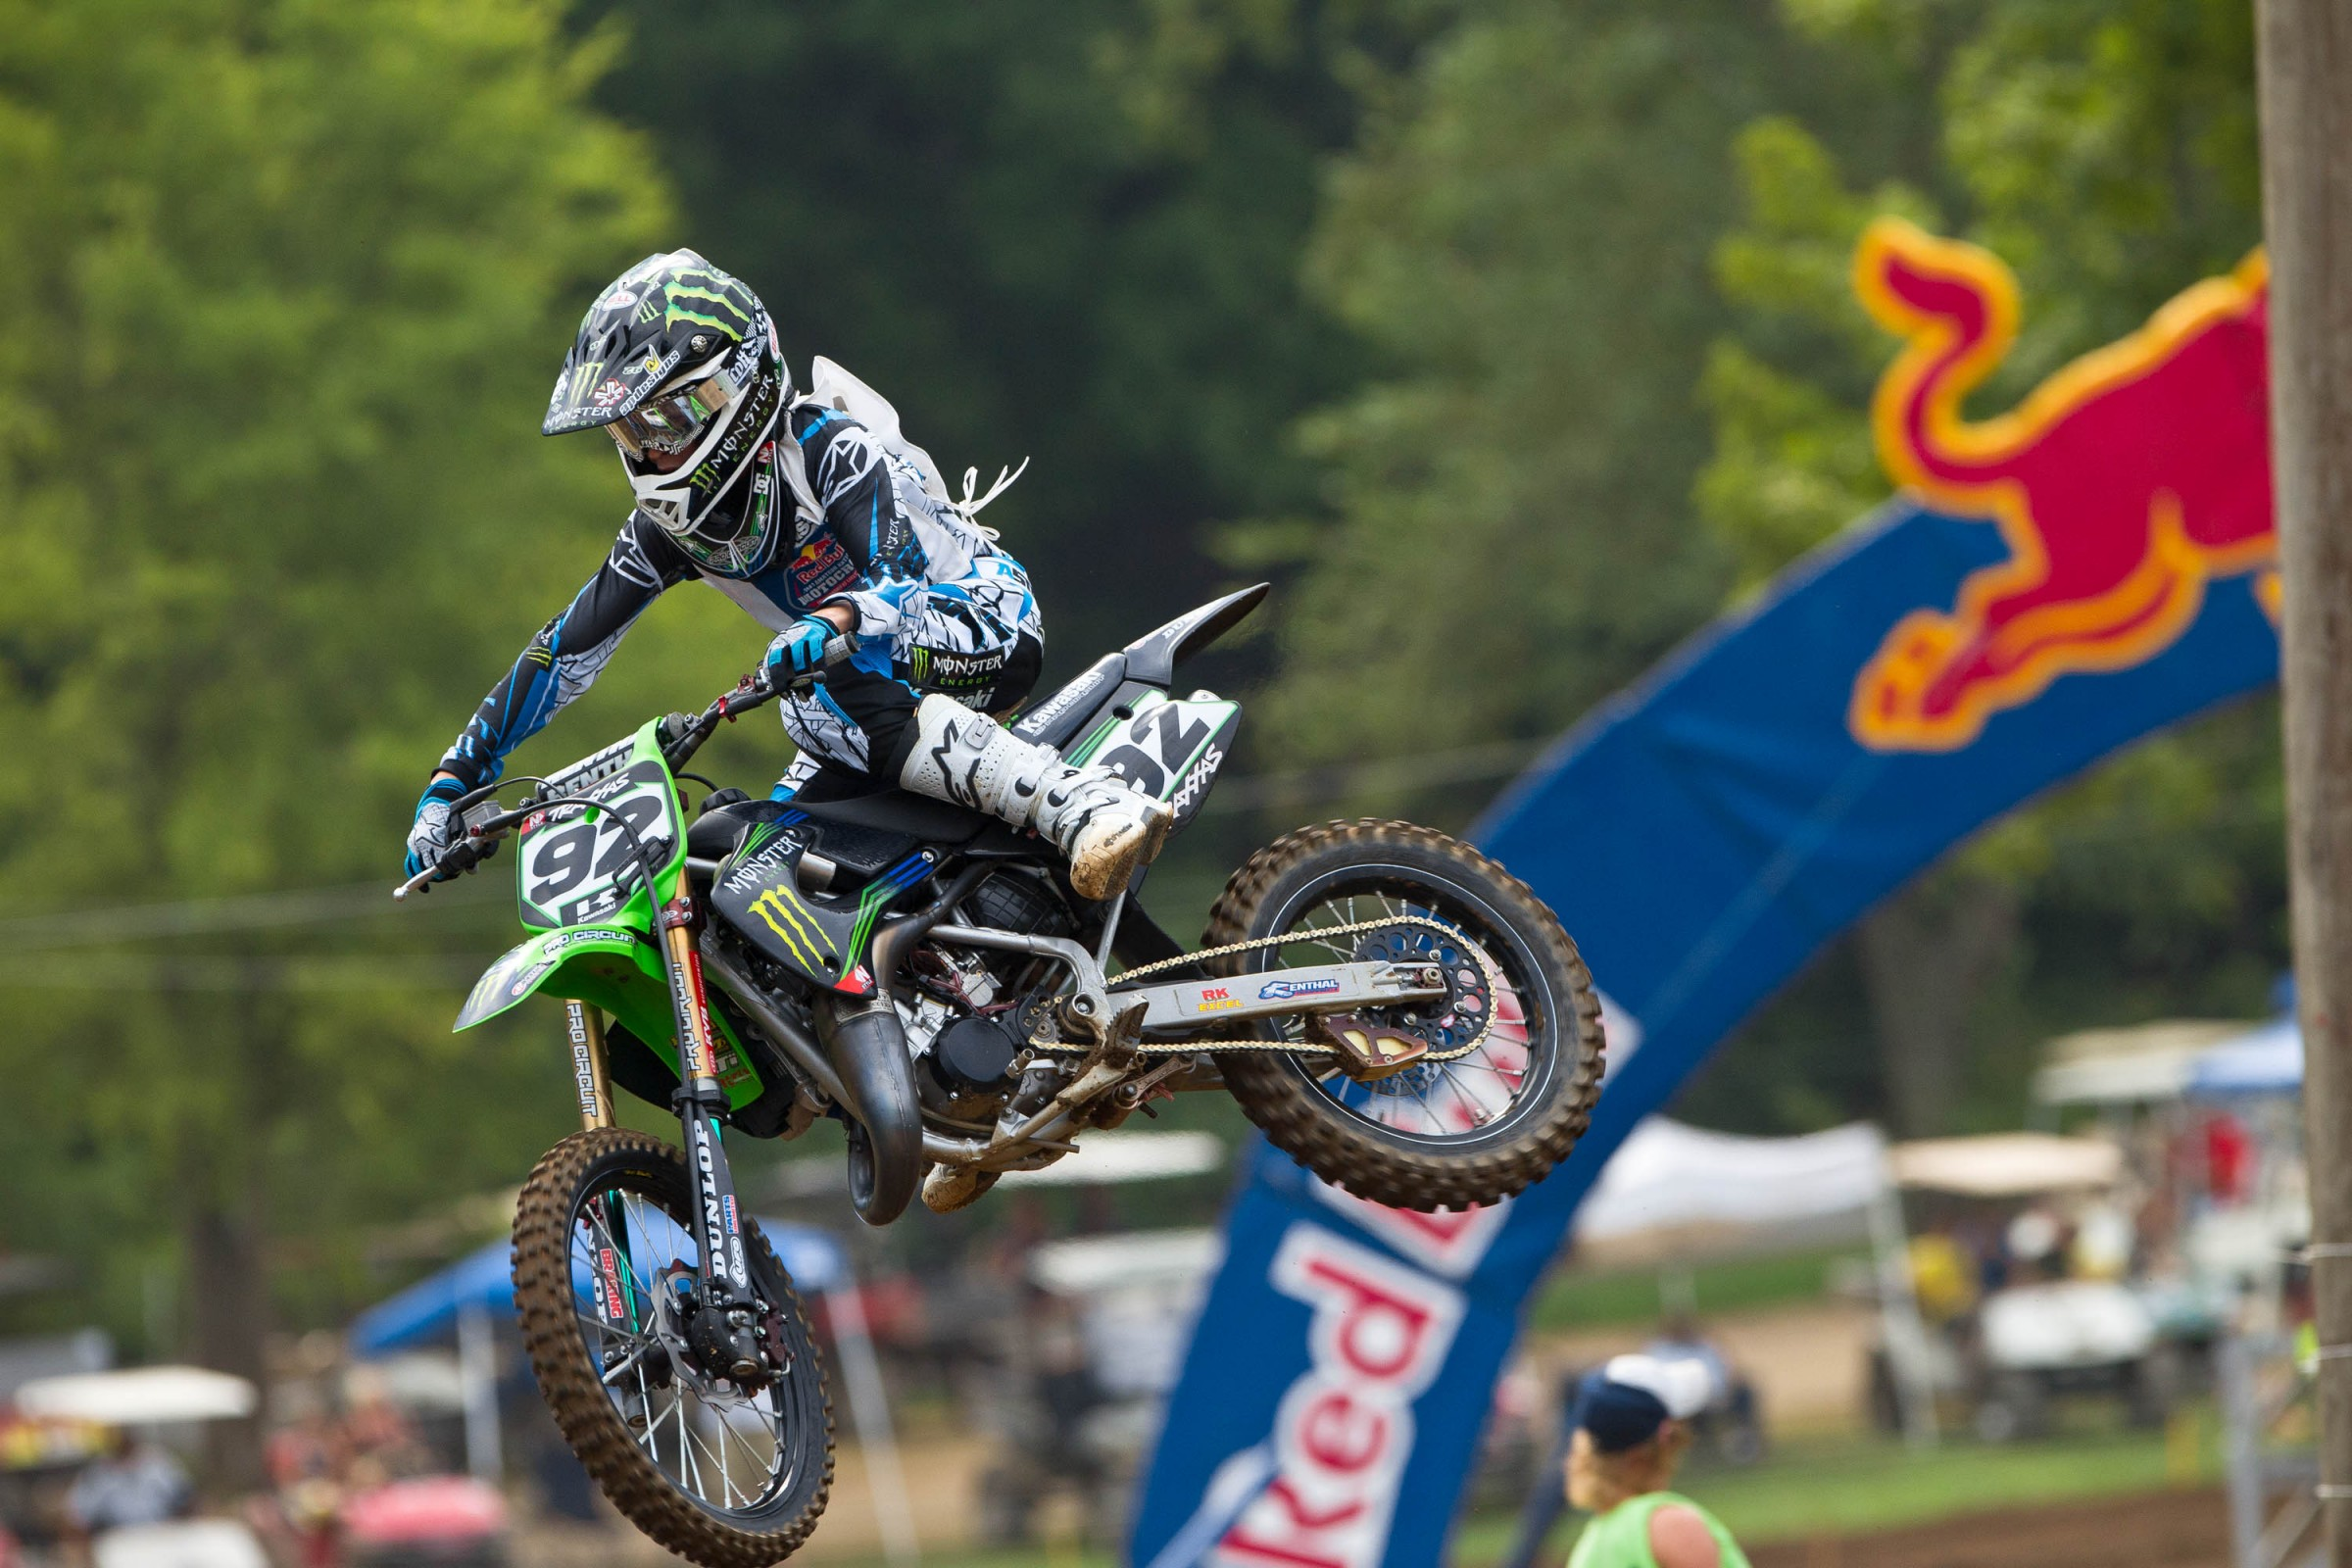 AC won four out of his six motos in 2011.